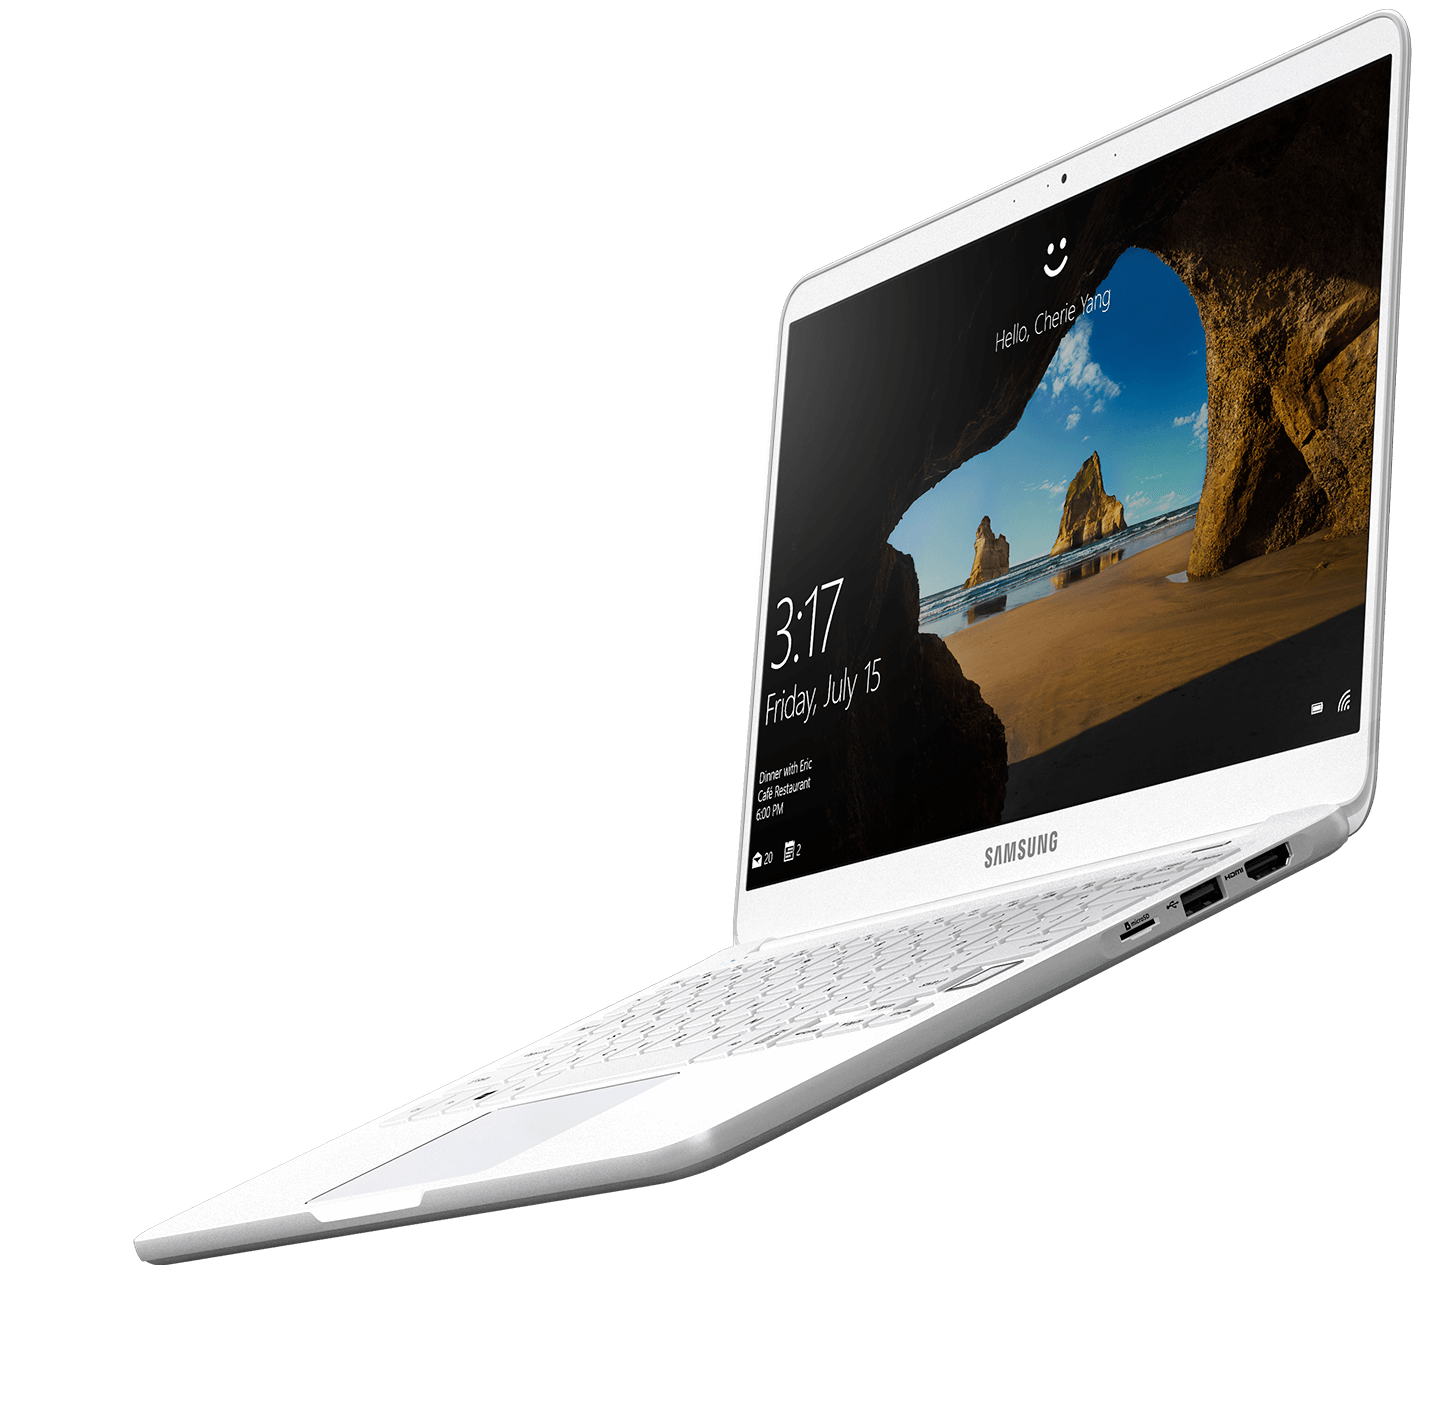 Samsung notebook hong kong